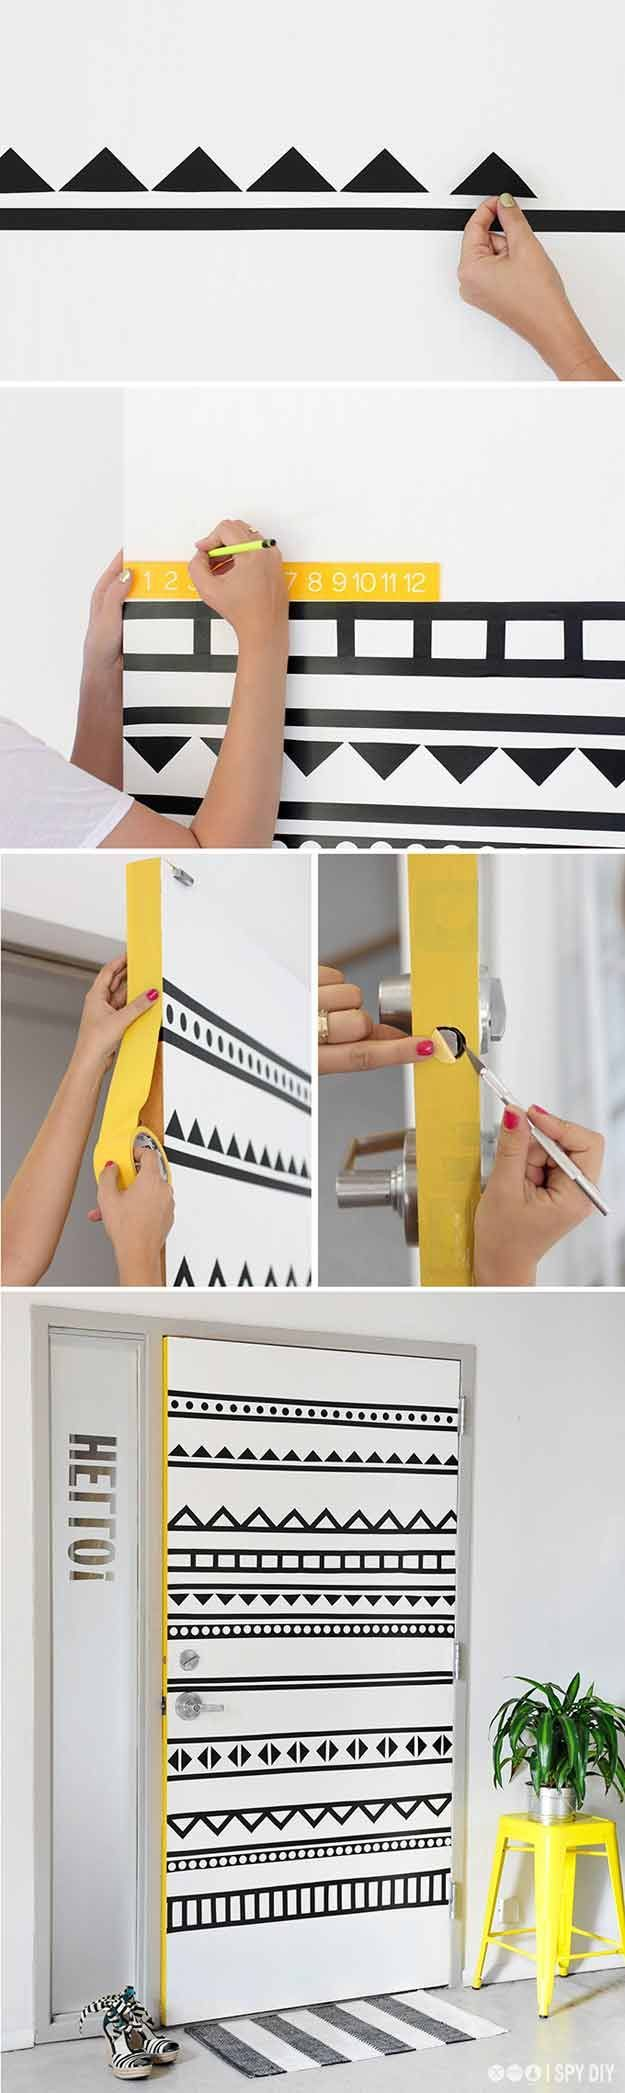 DIY Room Decor for Teens - Girls, Tweens and Teenagers love this cool washi tape idea